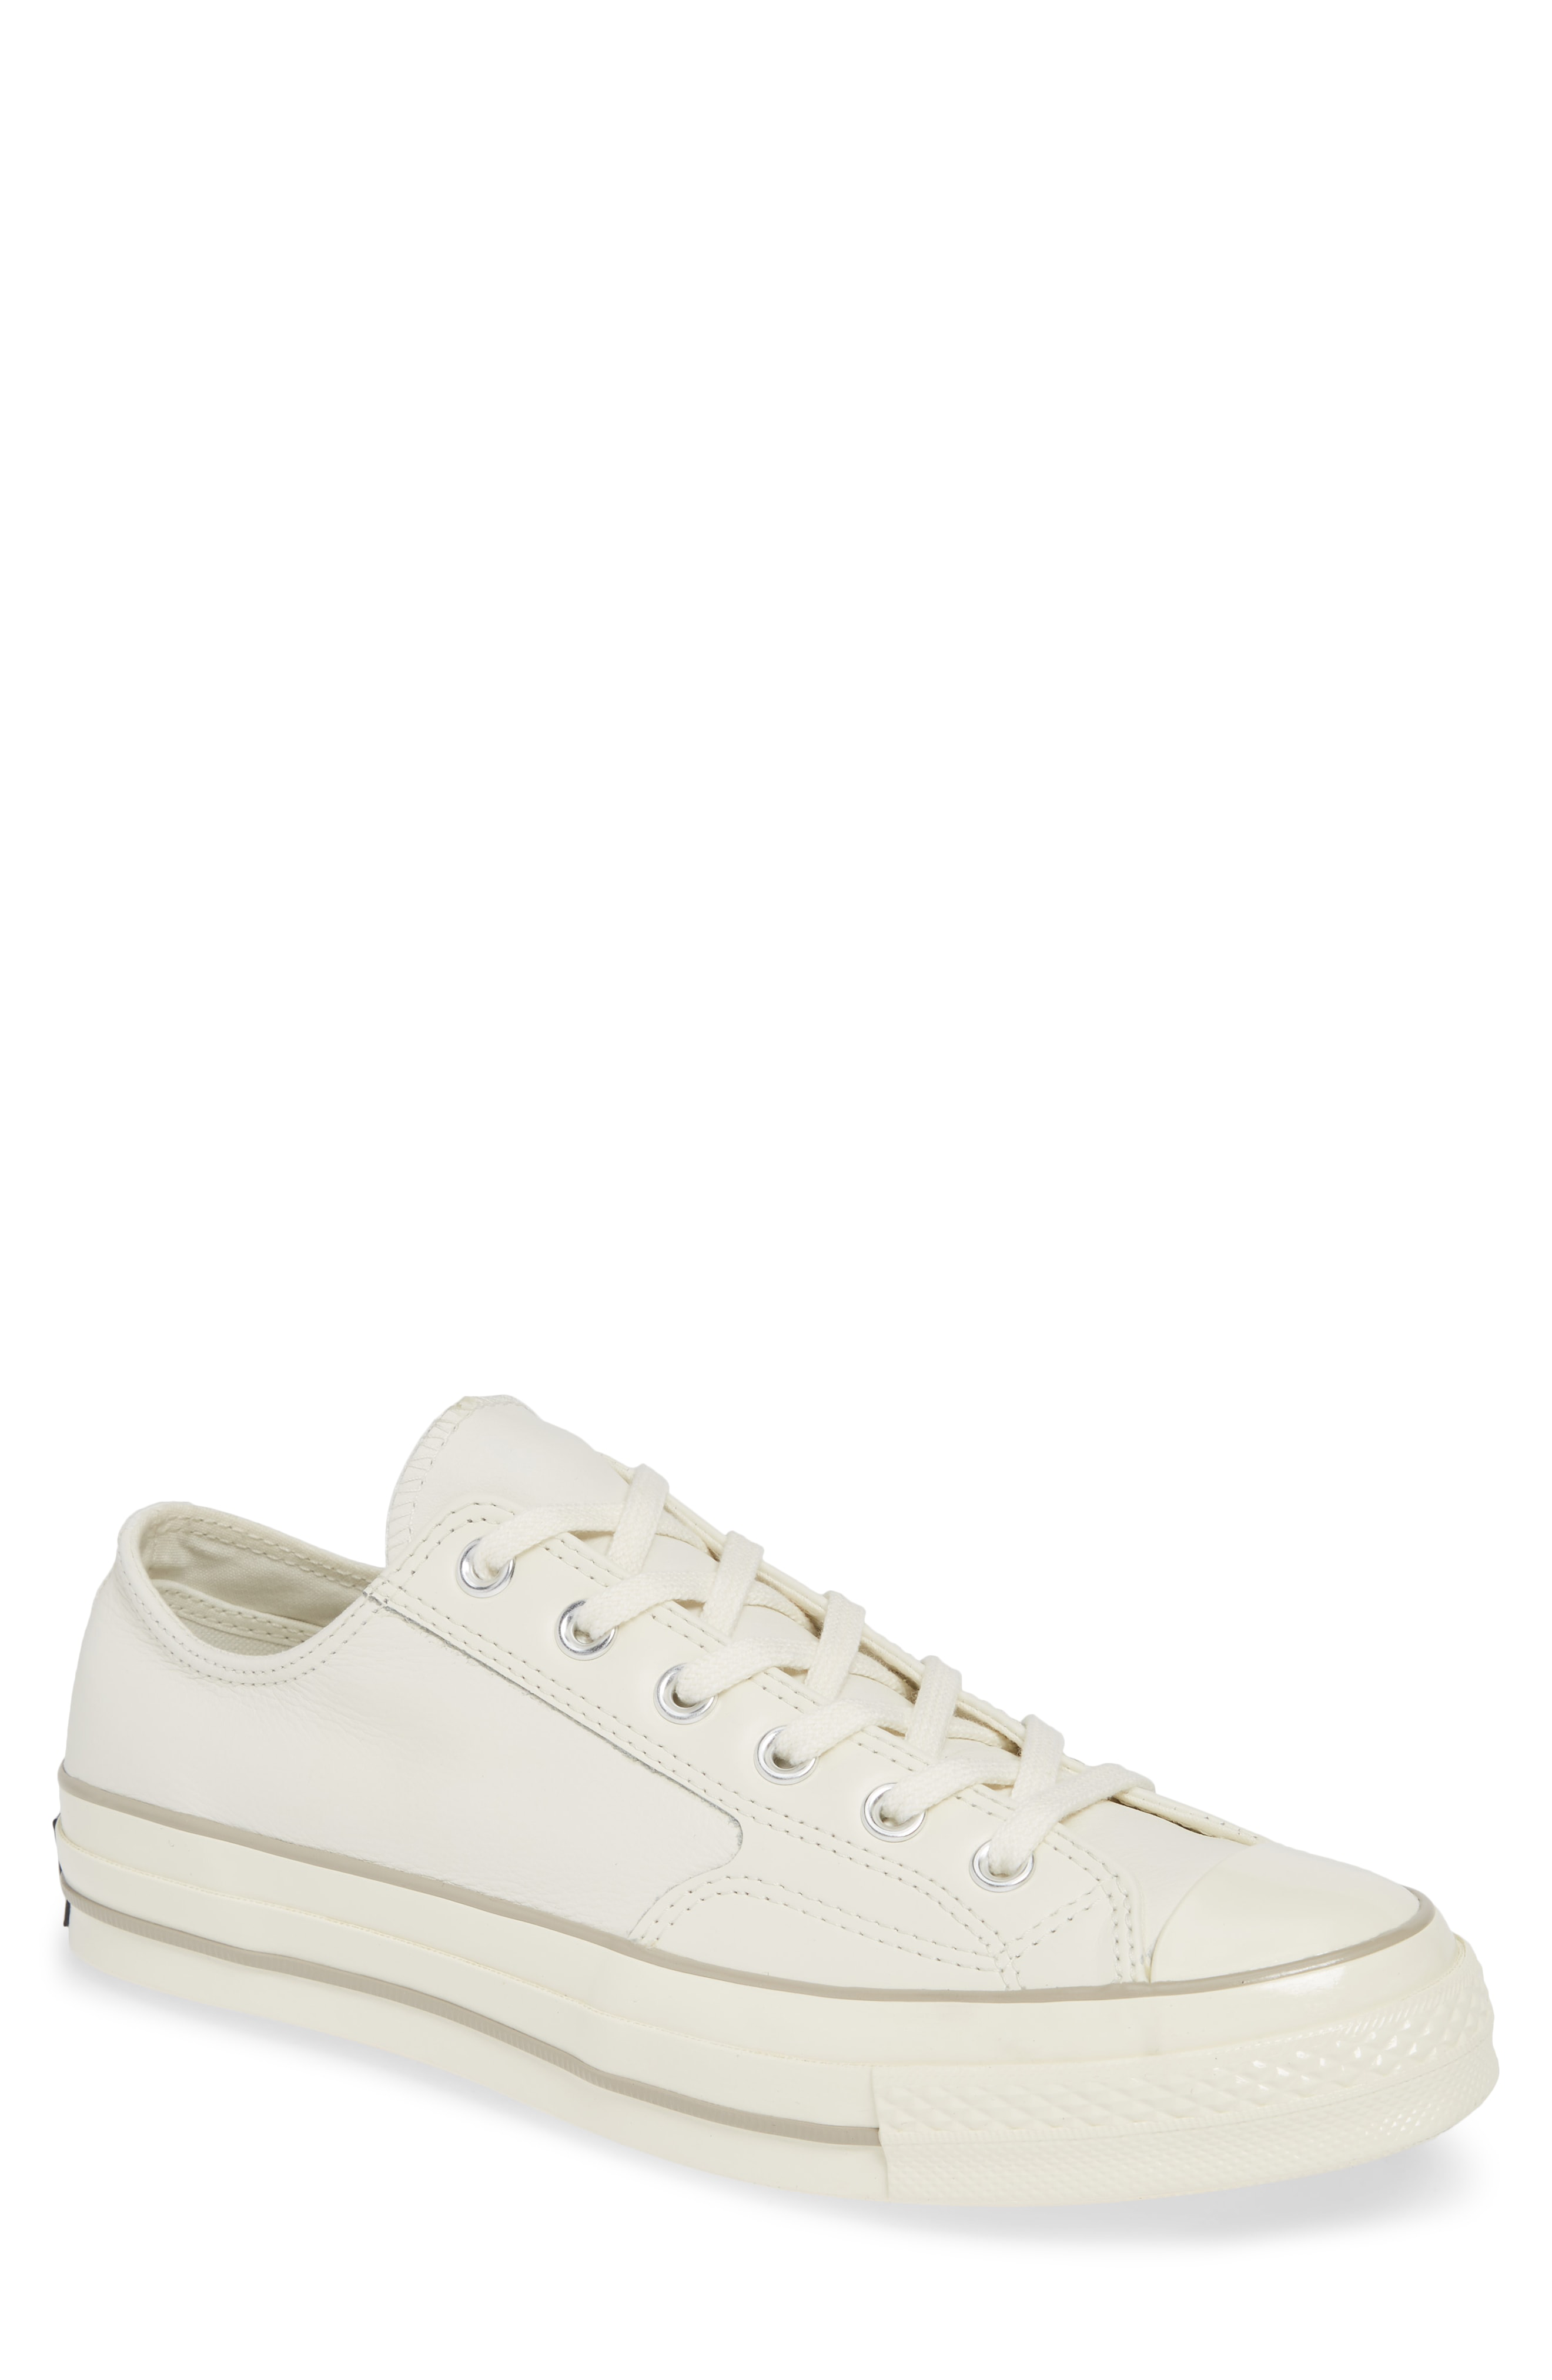 a9af5afbfc2 Converse Chuck Taylor All Star 70 Low Top Leather Sneaker In White ...